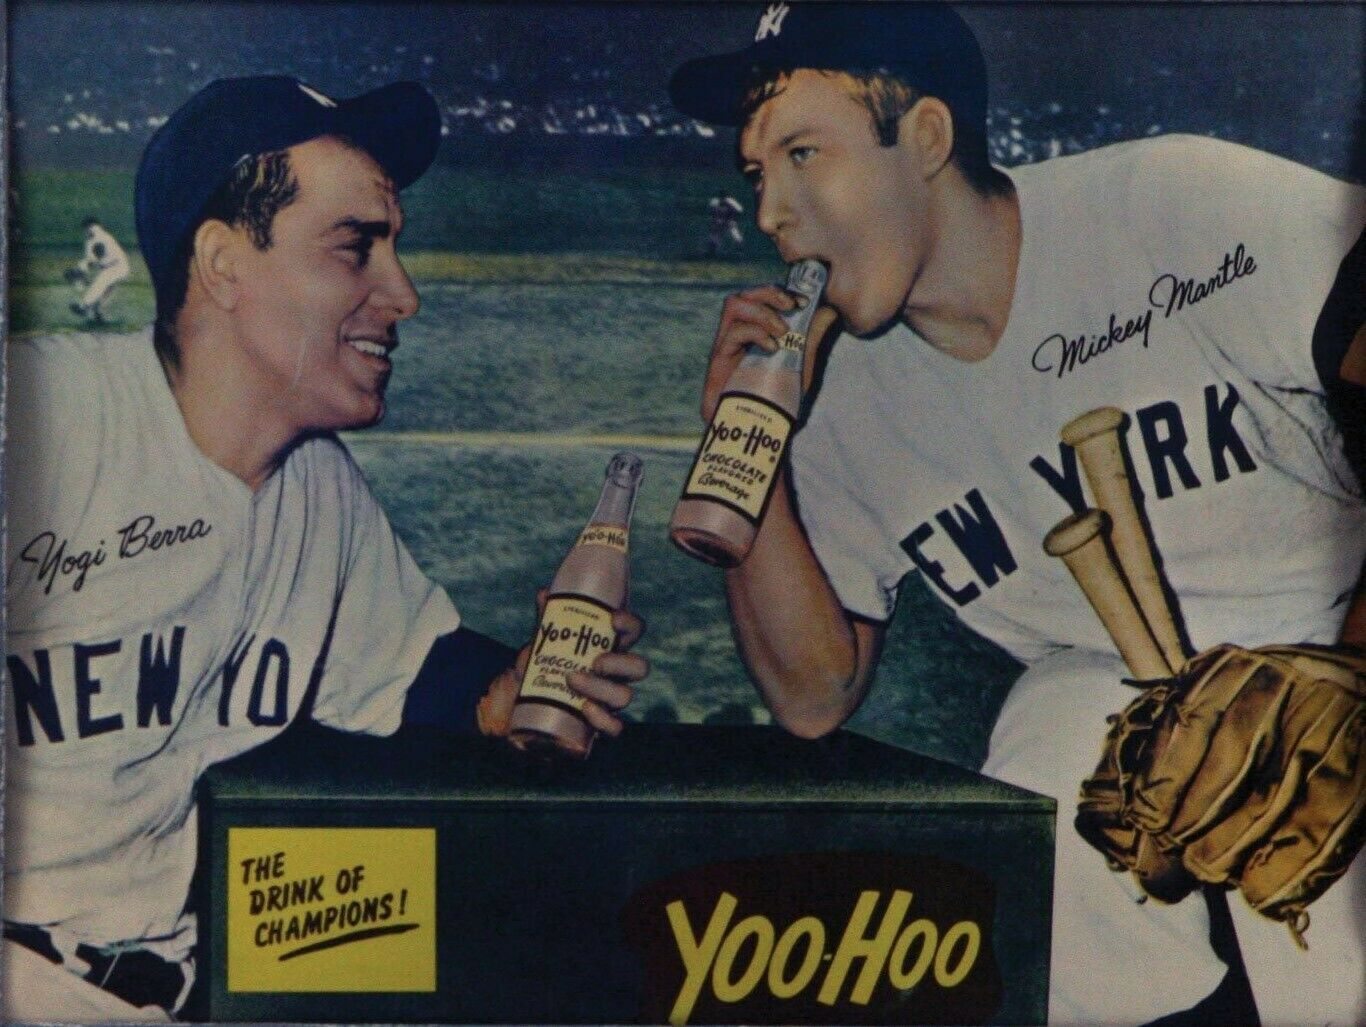 Primary image for YOGI BERRA & MICKEY MANTLE 8X10 PHOTO NEW YORK YANKEES BASEBALL PICTURE YOO-HOO